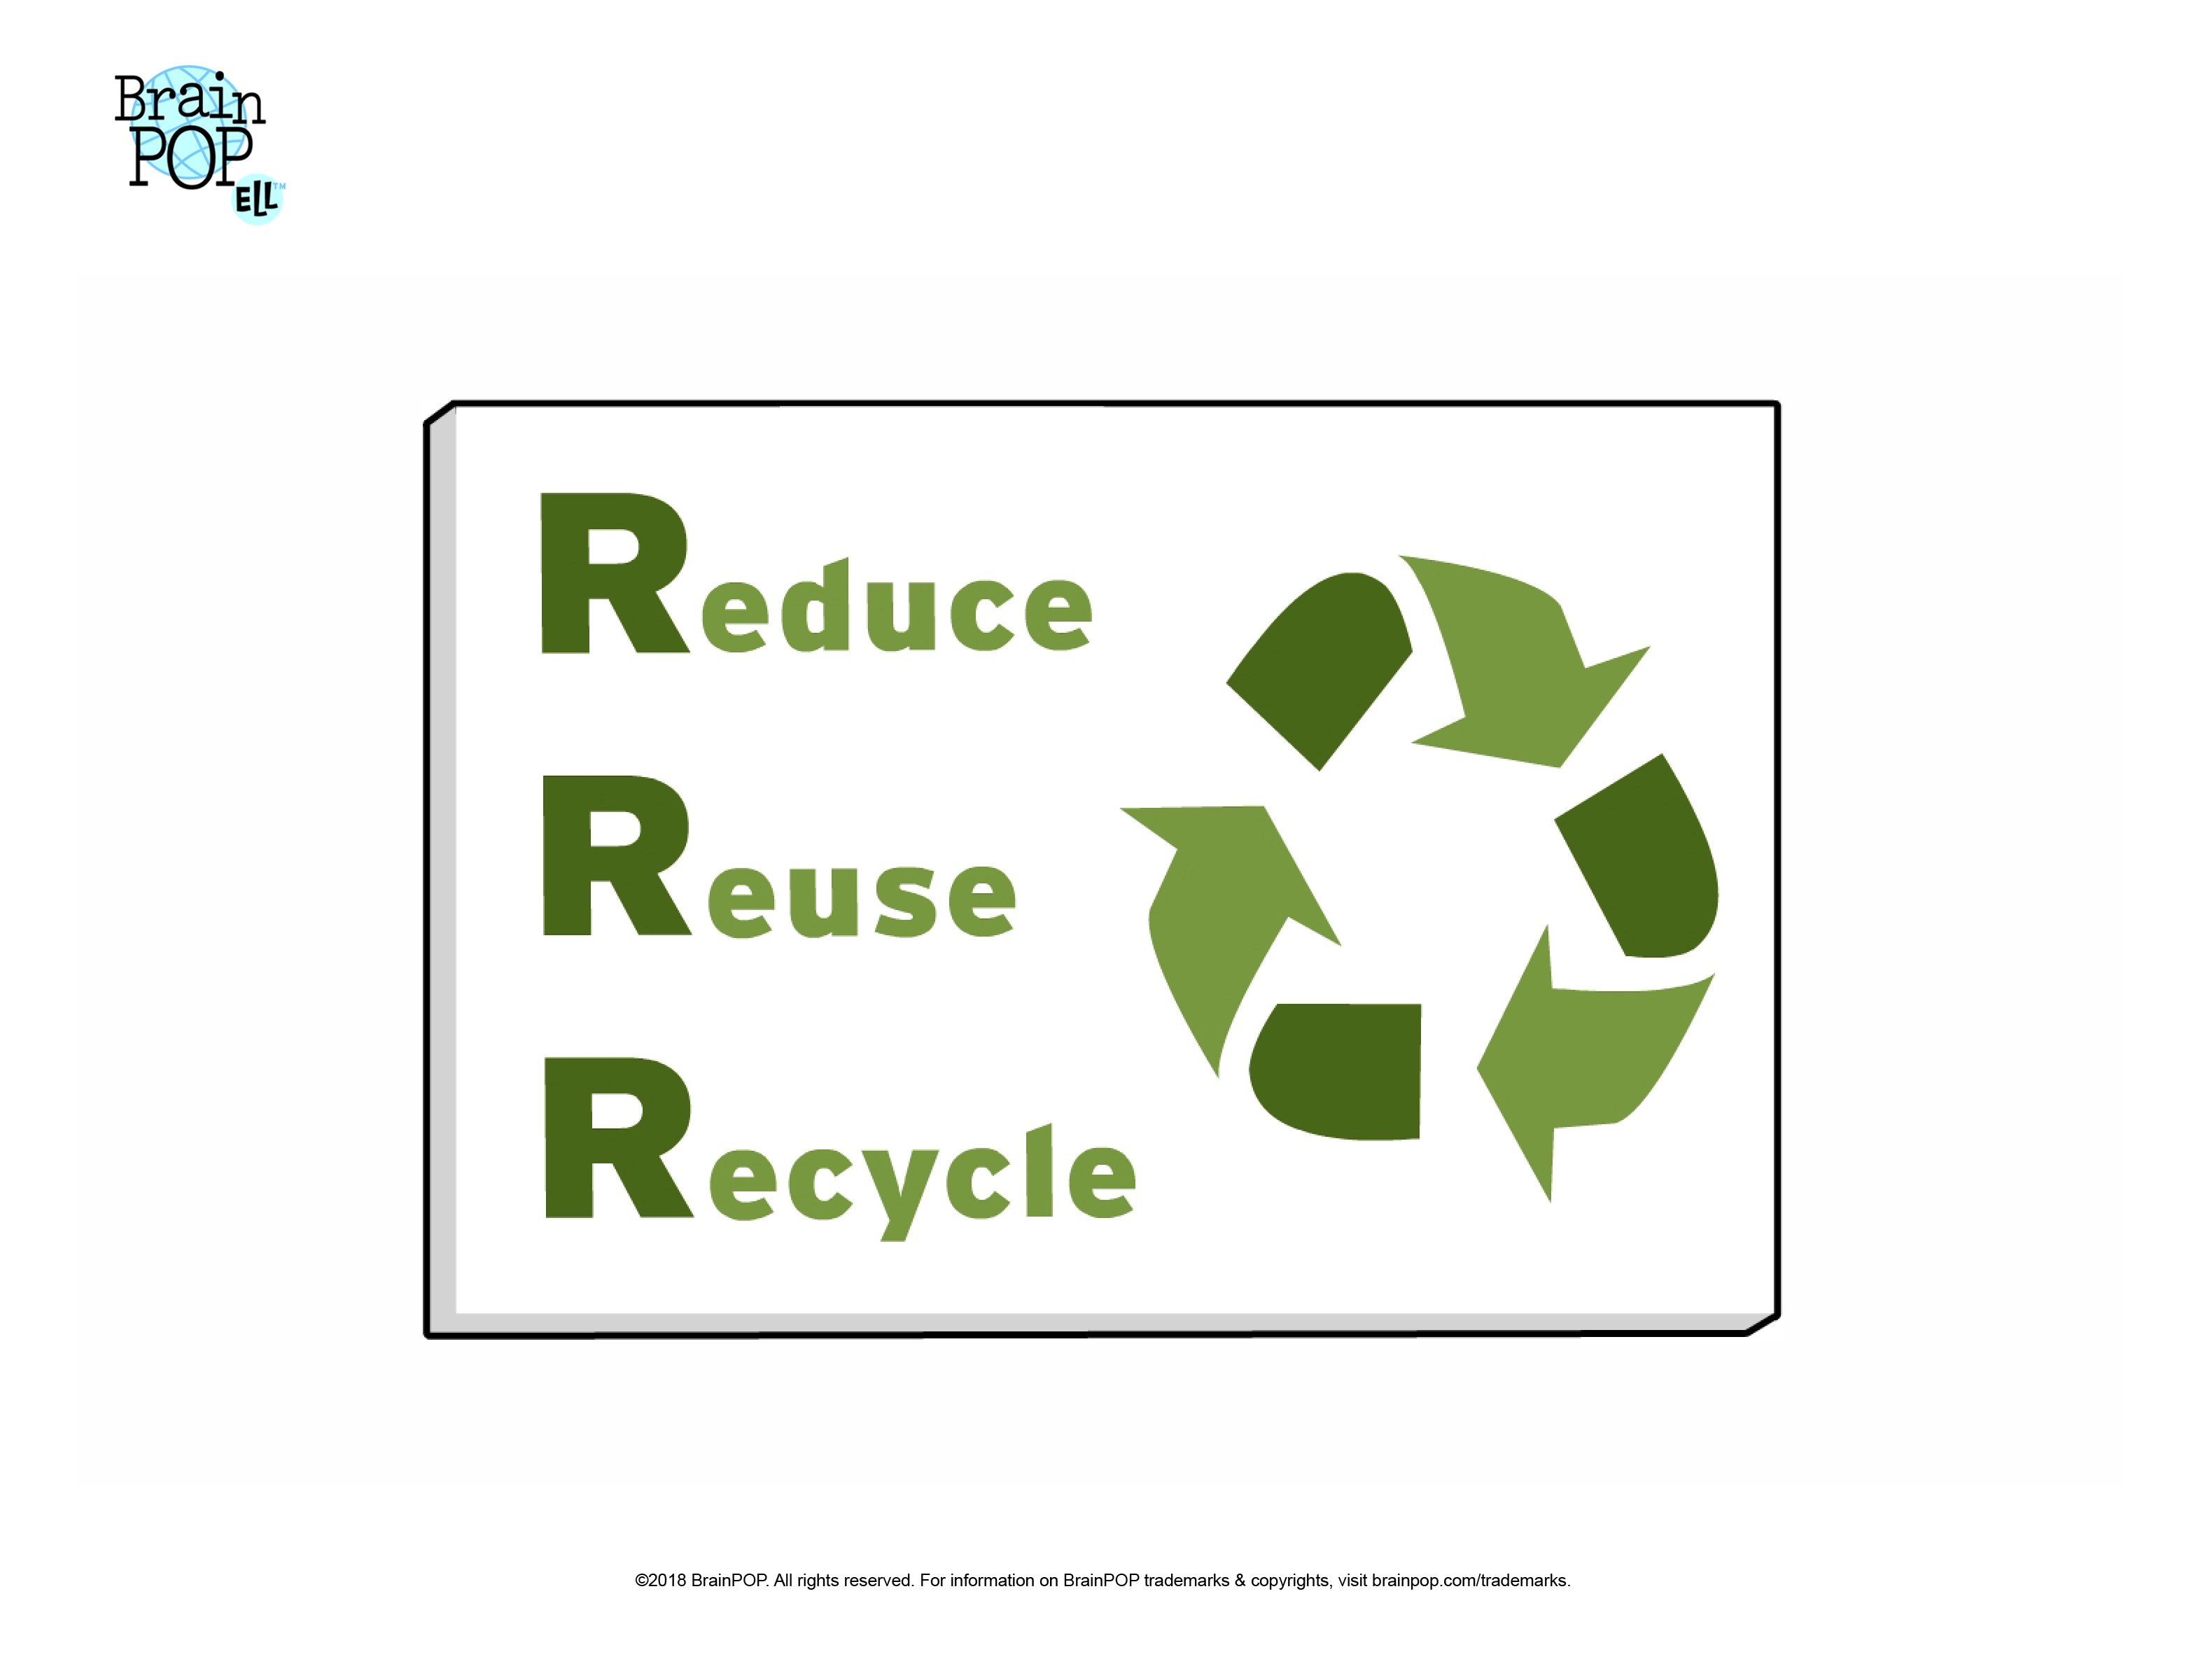 Reduce, Reuse, Recycle Image